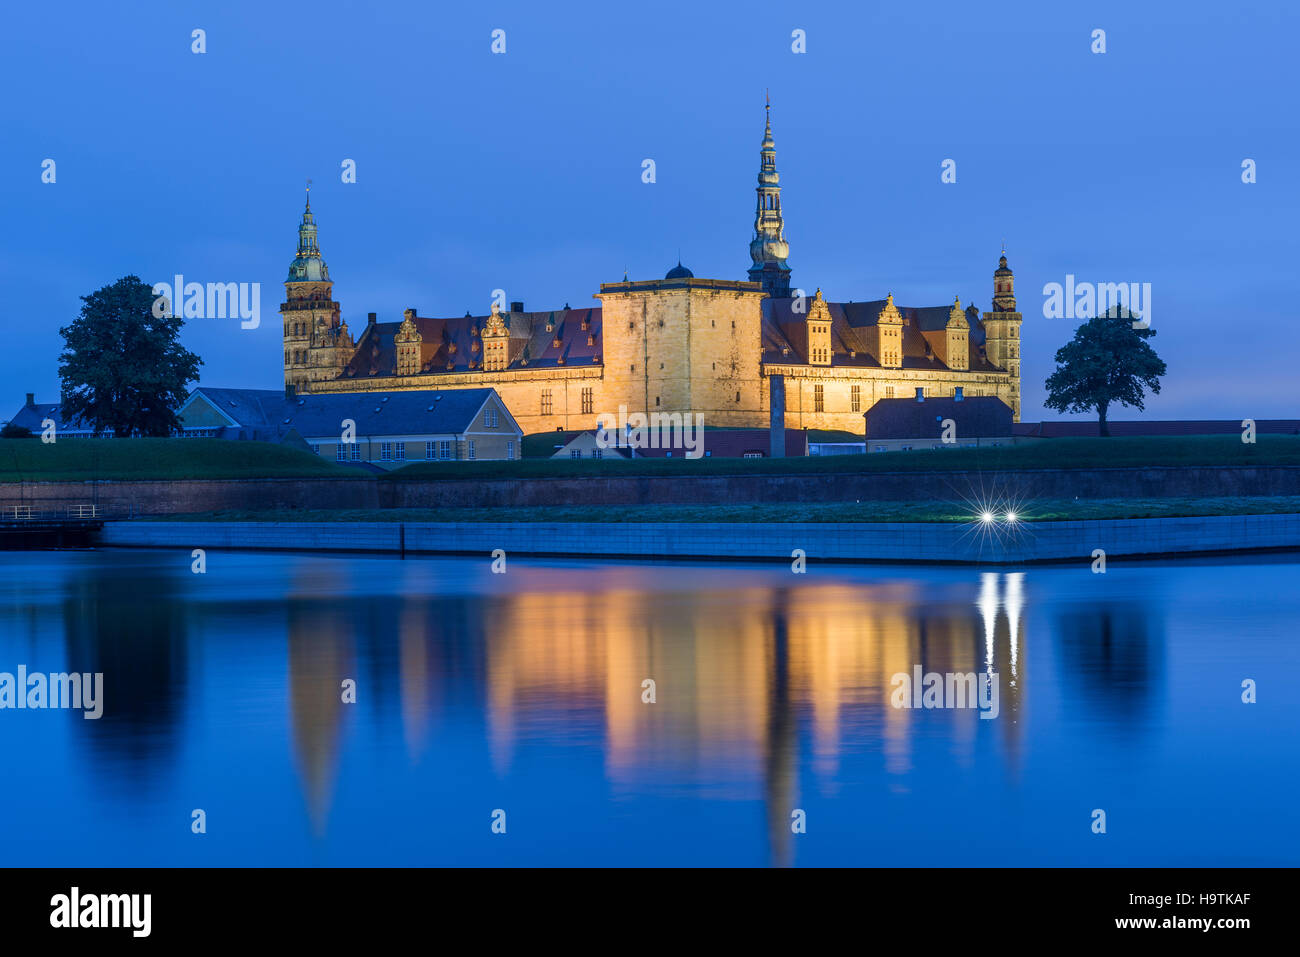 Kronborg Castle and fortress at night in Elsinore, Denmark - Stock Image